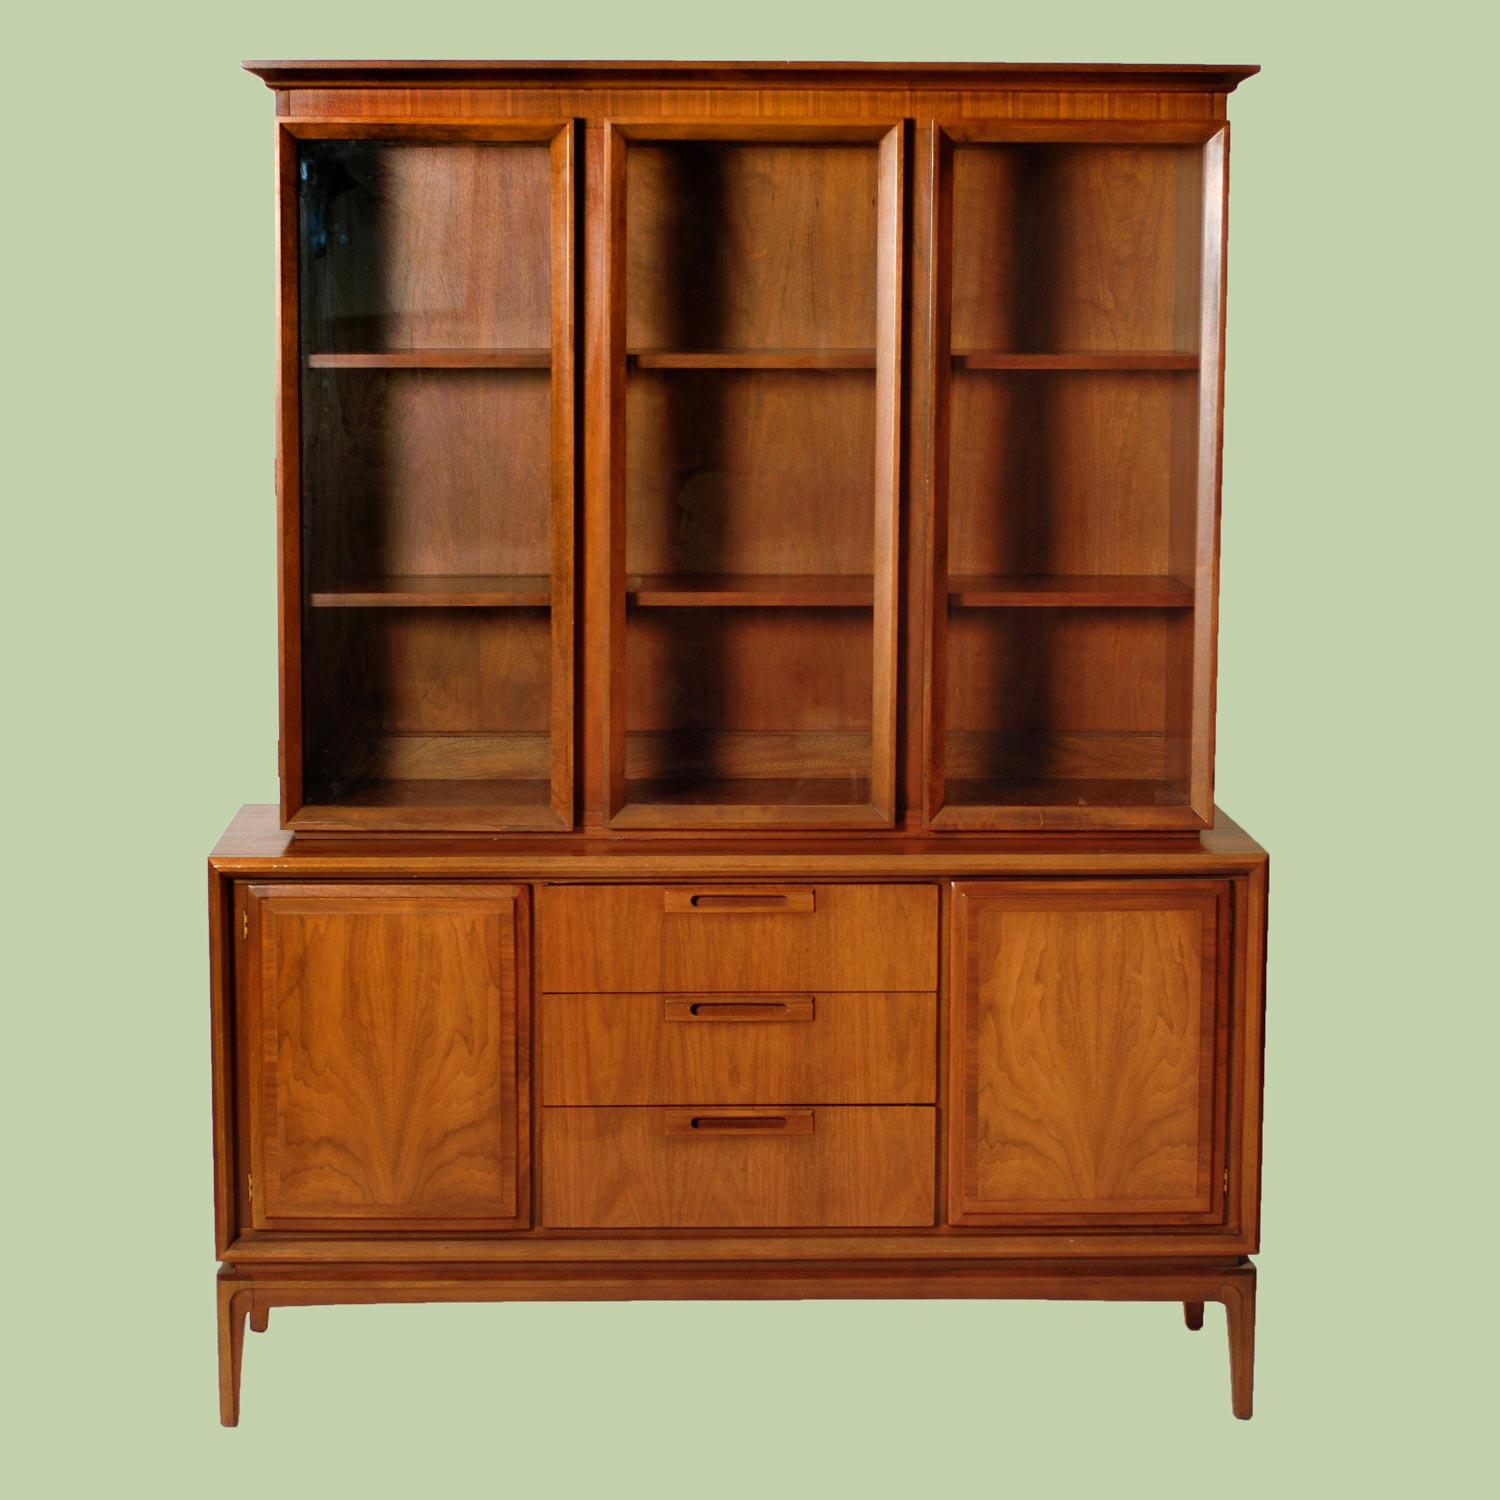 Harrington Galleries - Appraisals - Mid century - China Cabinet